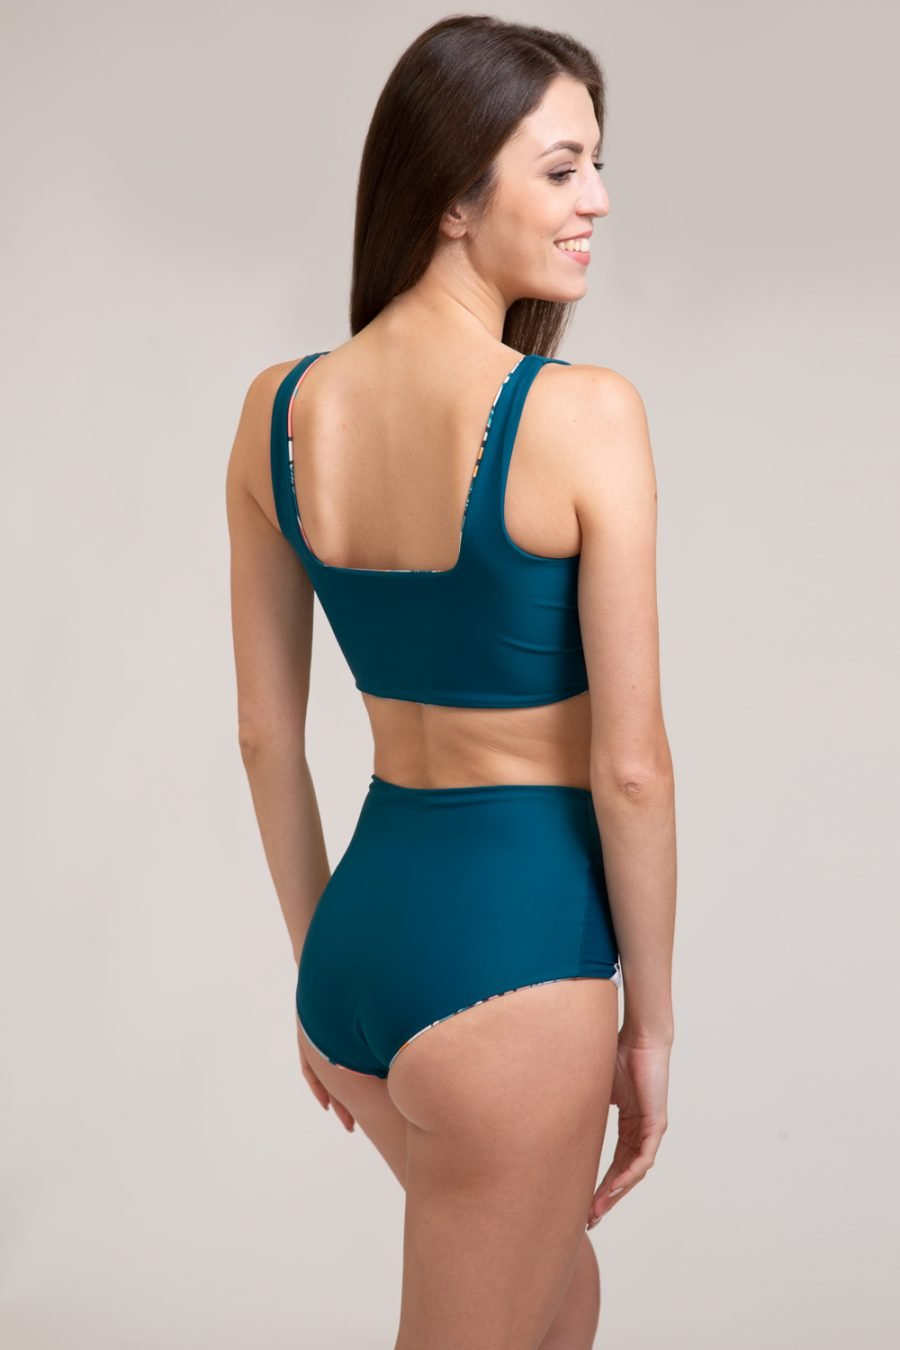 double face bikini yoga clothing for women made in Italy green color and tropical pattern econyl yarn and recycled fabric